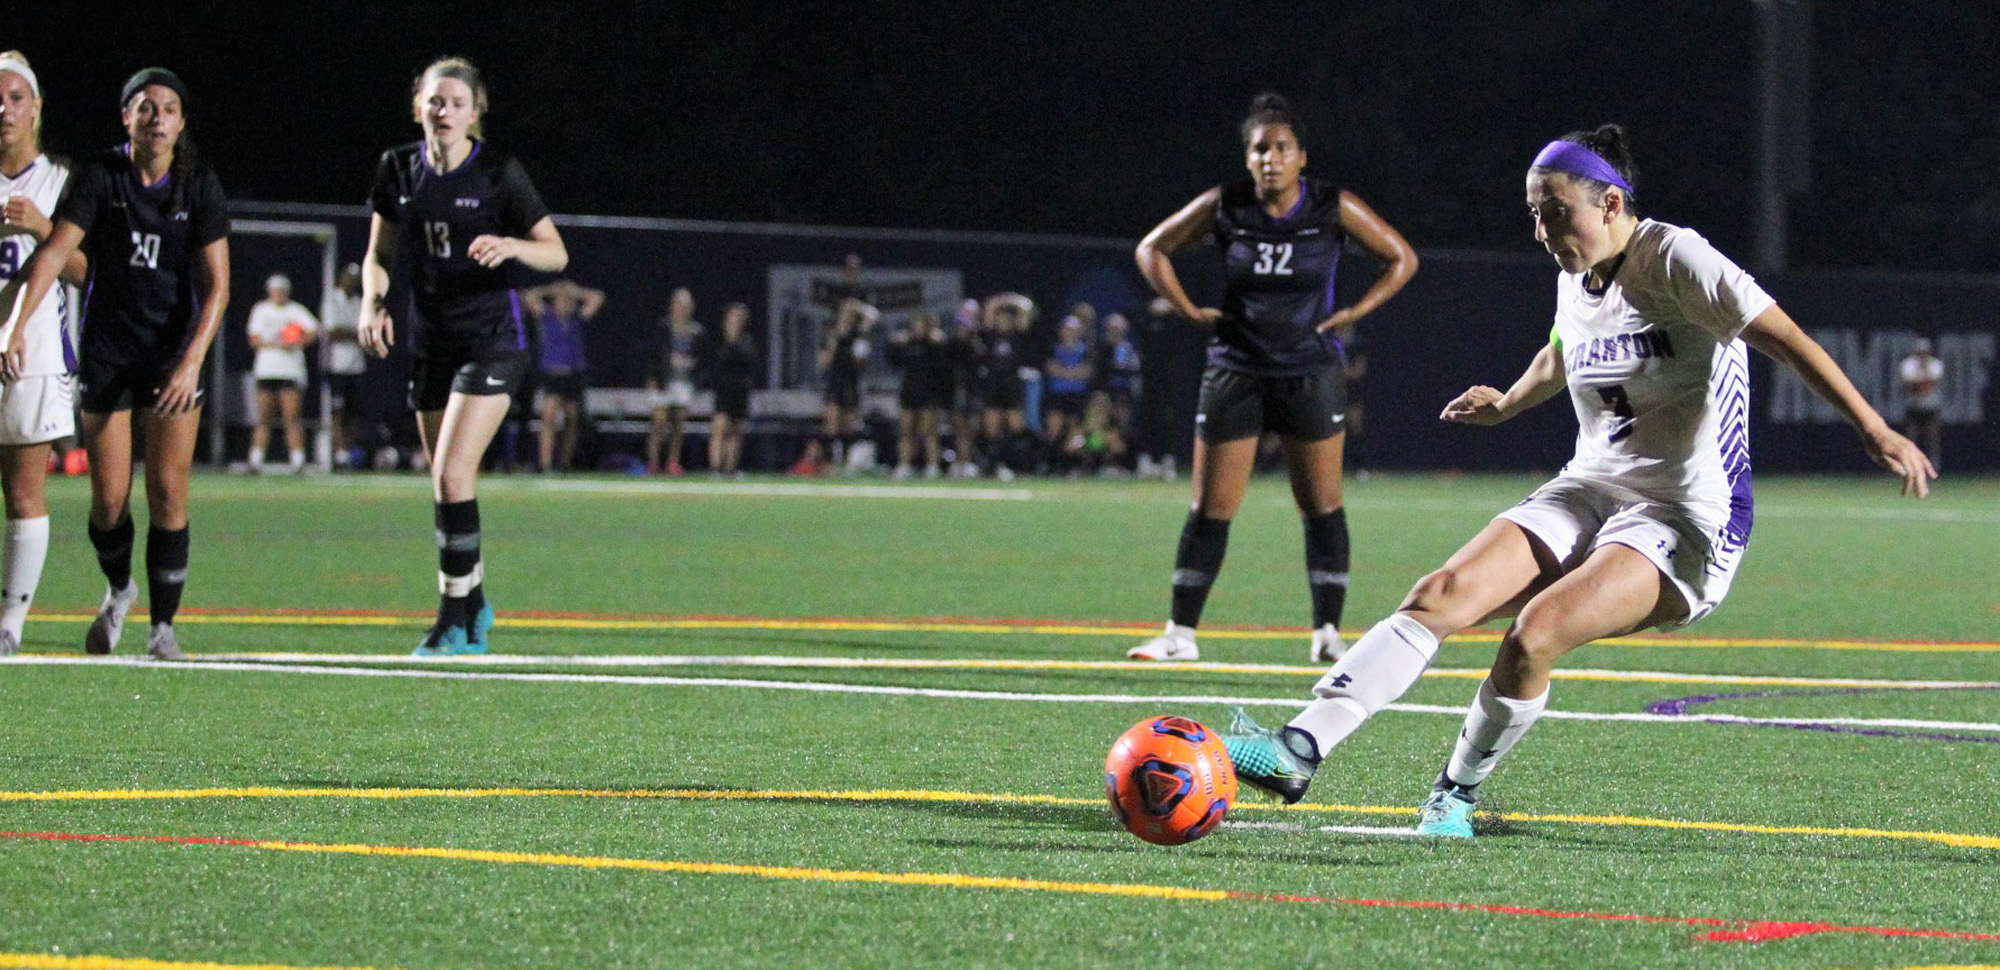 Senior Erica Licari buried this penalty kick with 12 seconds left to lift the Royals past NYU on Tuesday night.